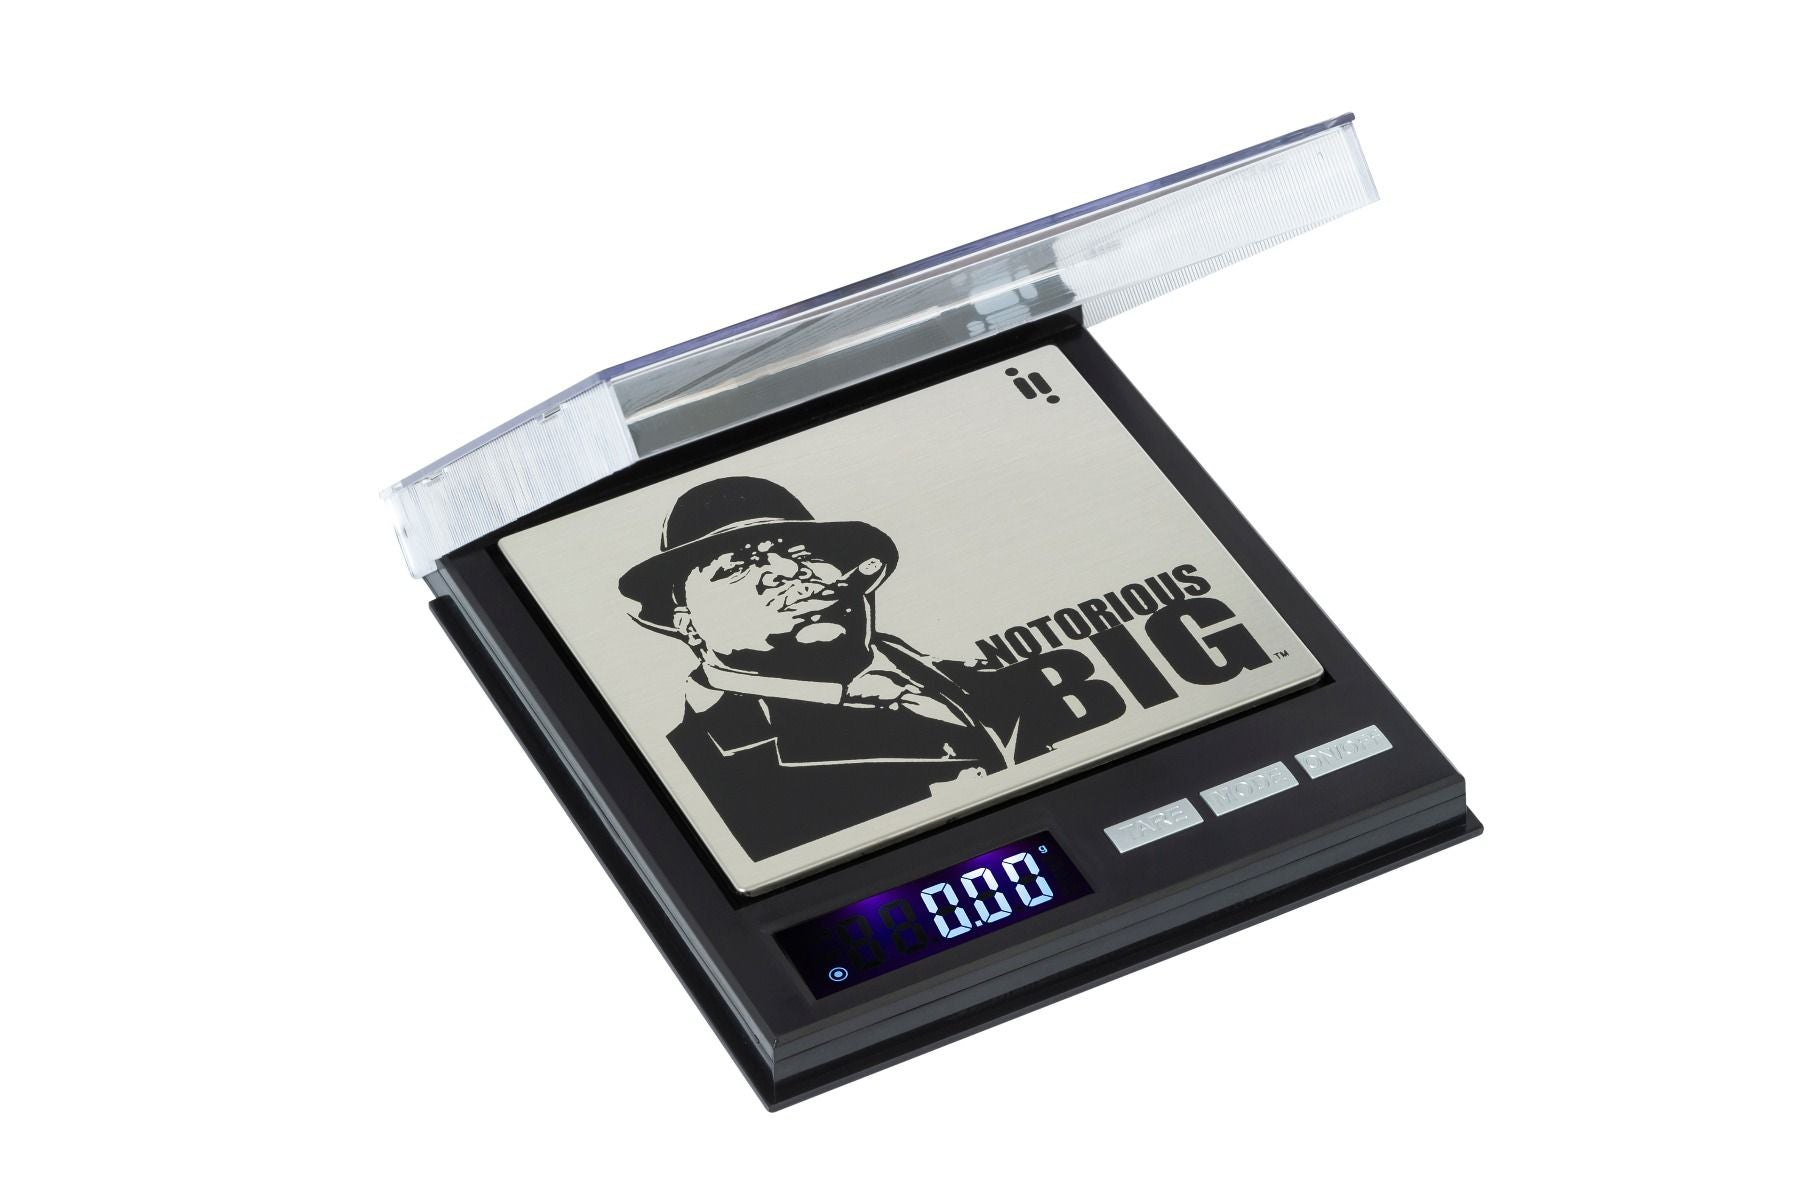 IN-BGC0100 Officially licensed Notorious BIG CD scale 100 x 0.01g